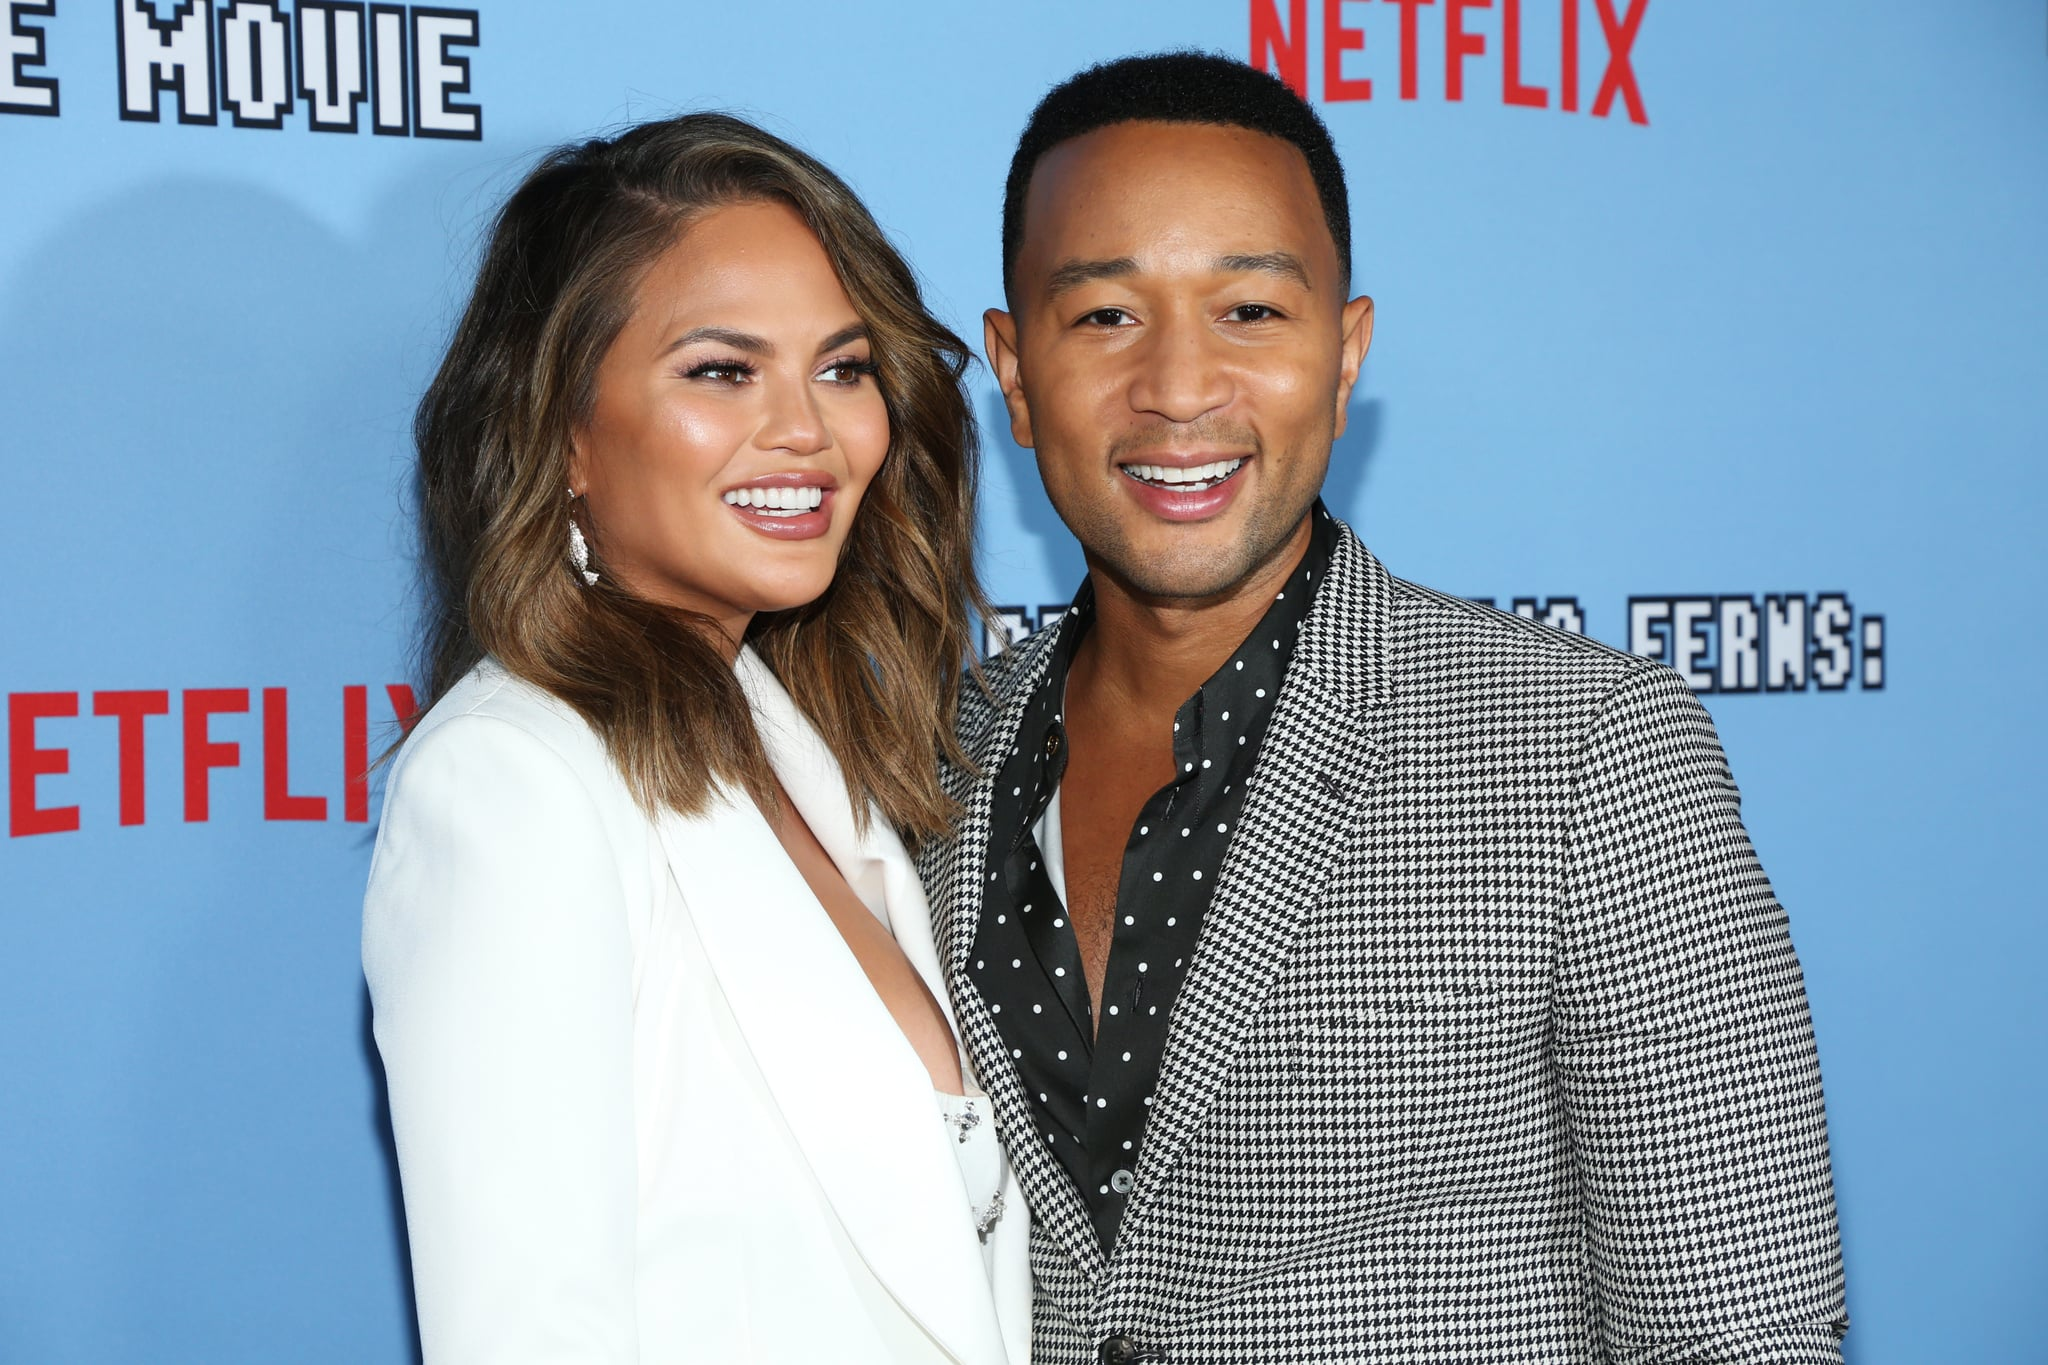 HOLLYWOOD, CALIFORNIA - SEPTEMBER 16: Chrissy Teigen and John Legend attend the LA premiere of Netflix's